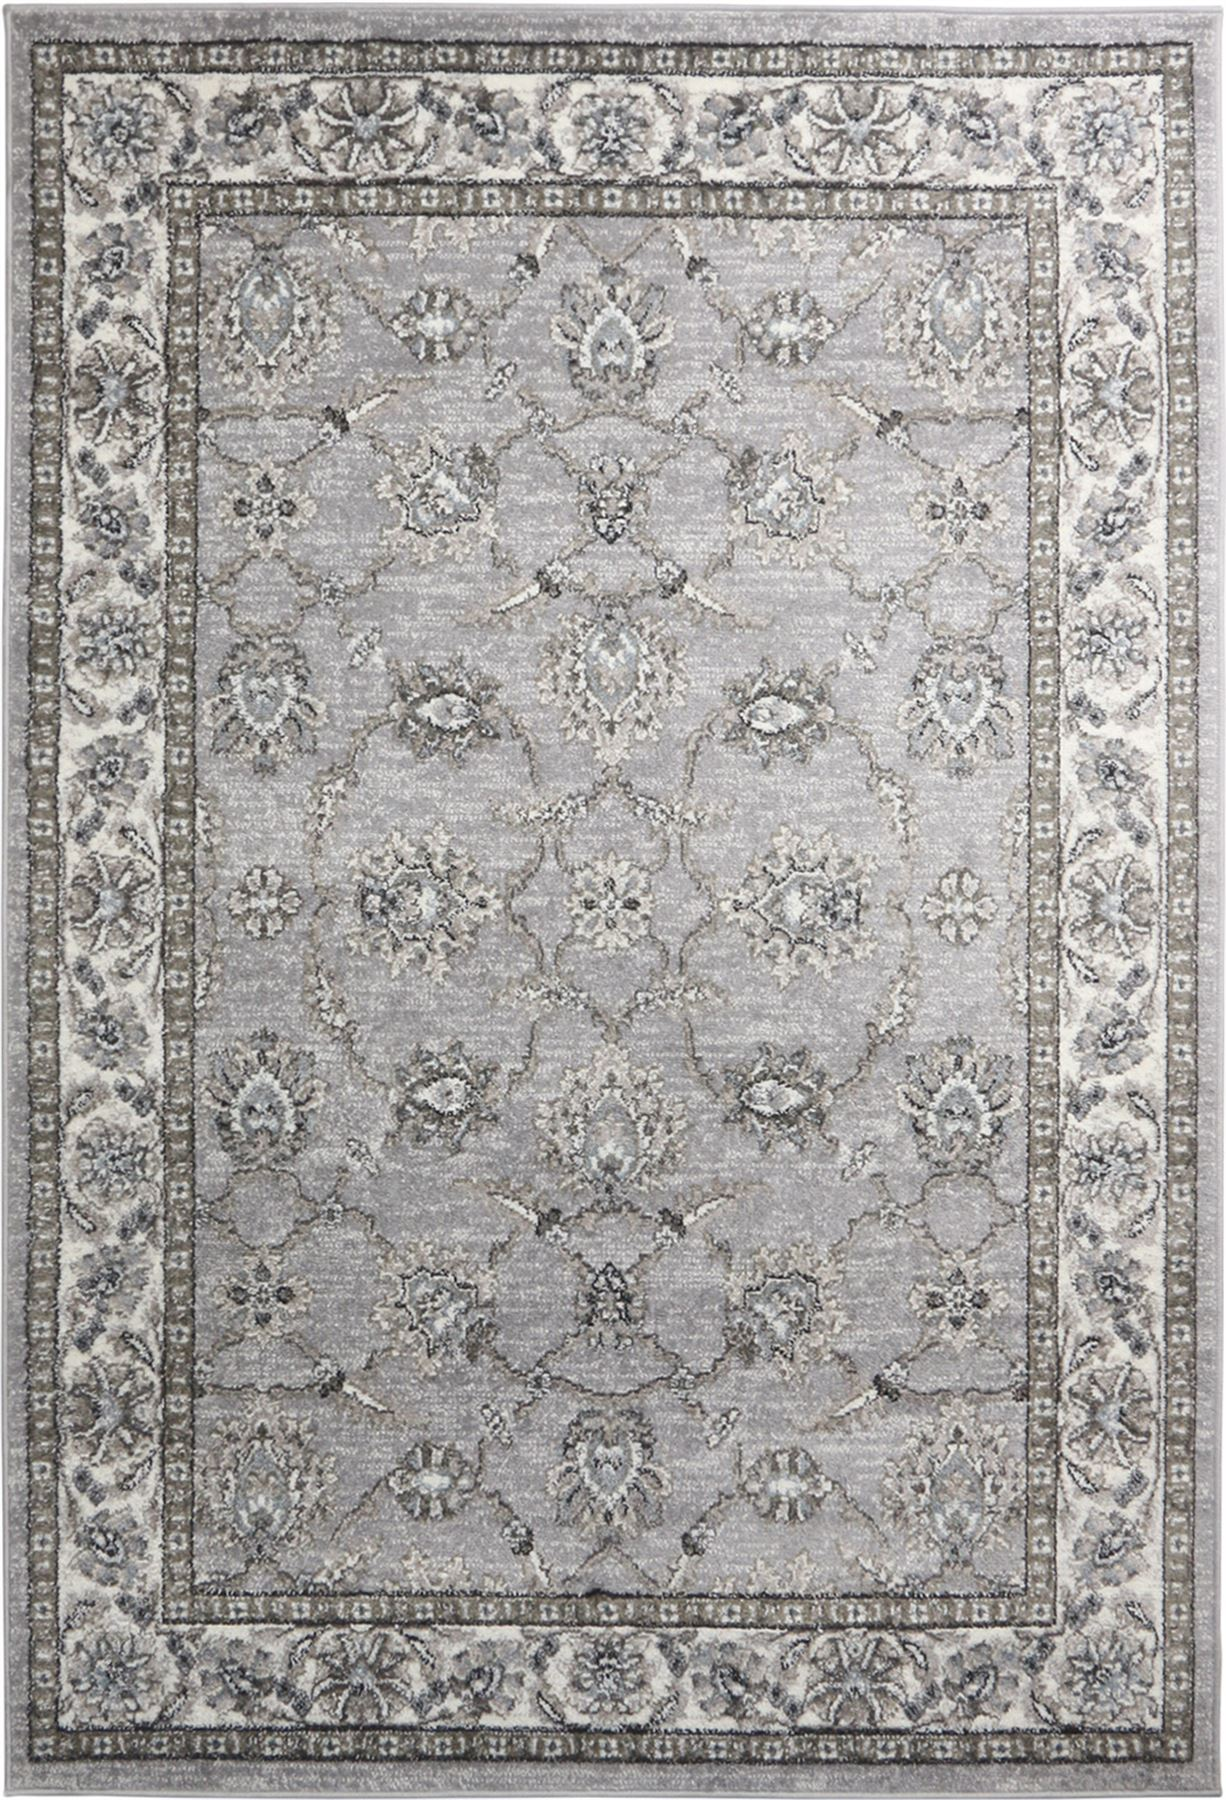 Large-Quality-Traditional-Area-Rug-Assorted-Persian-Floral-Designs-Carpet-Runner thumbnail 63